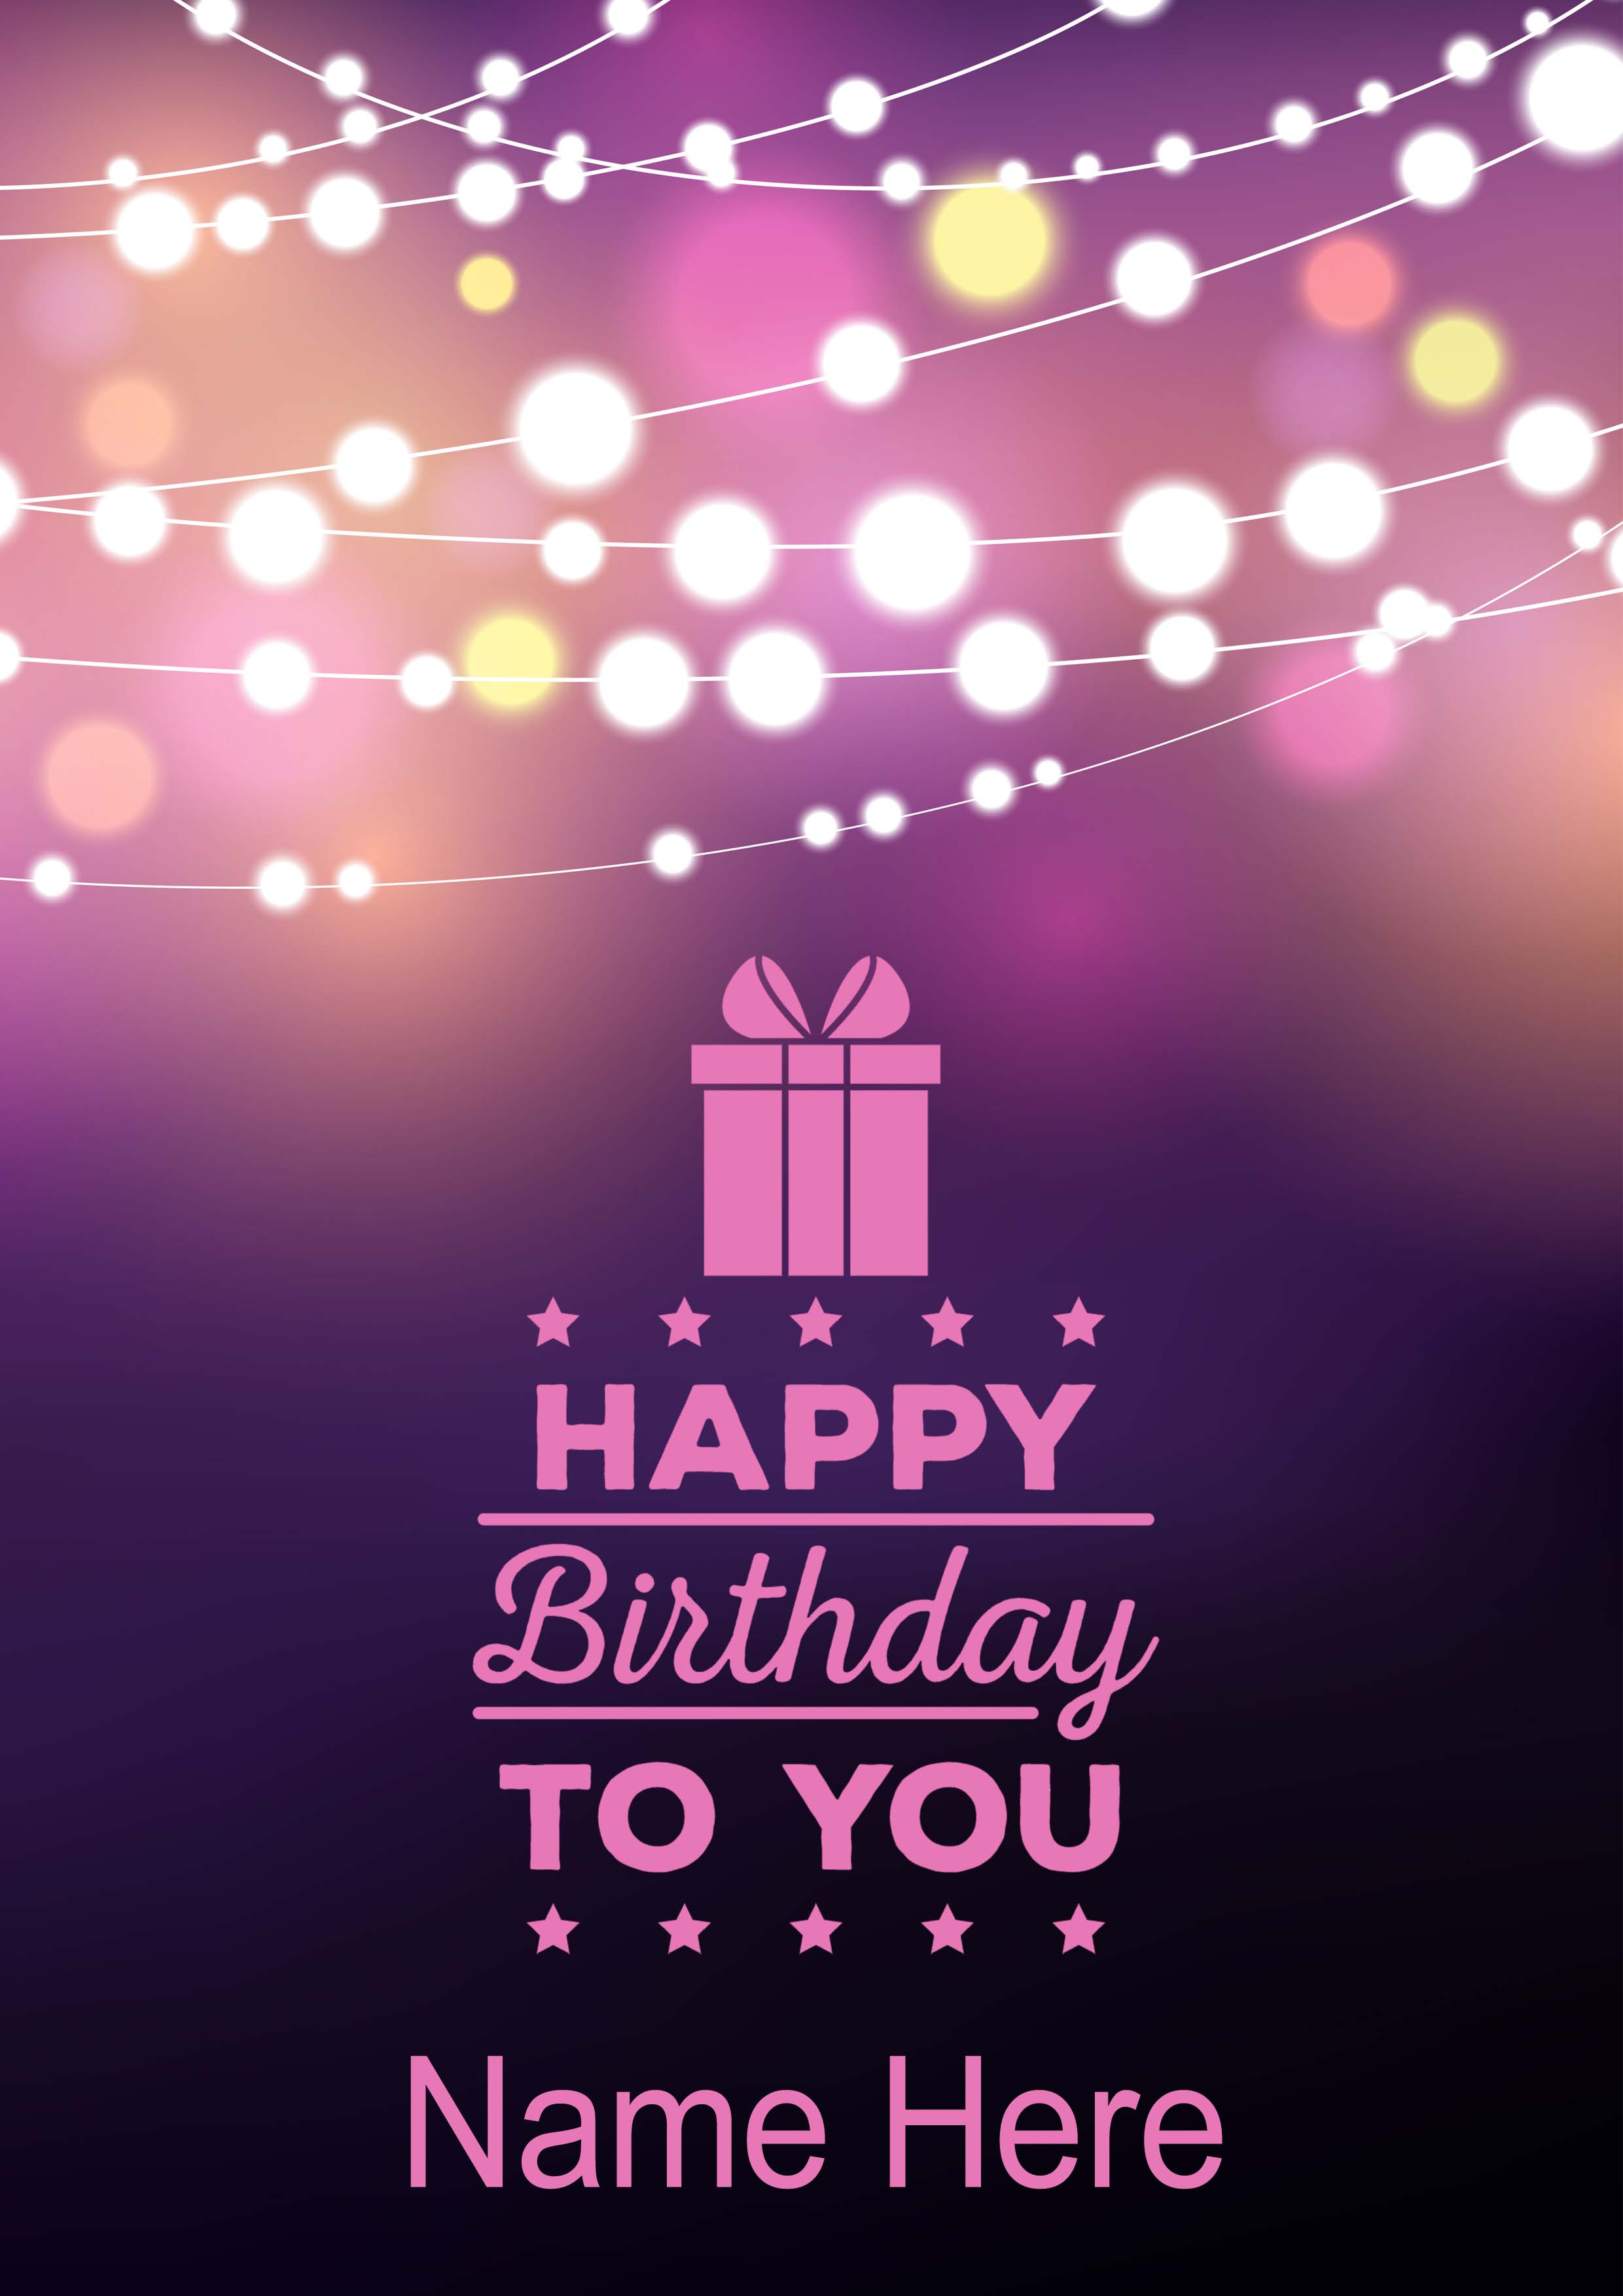 Happy Birthday To You Lights Background MyCards